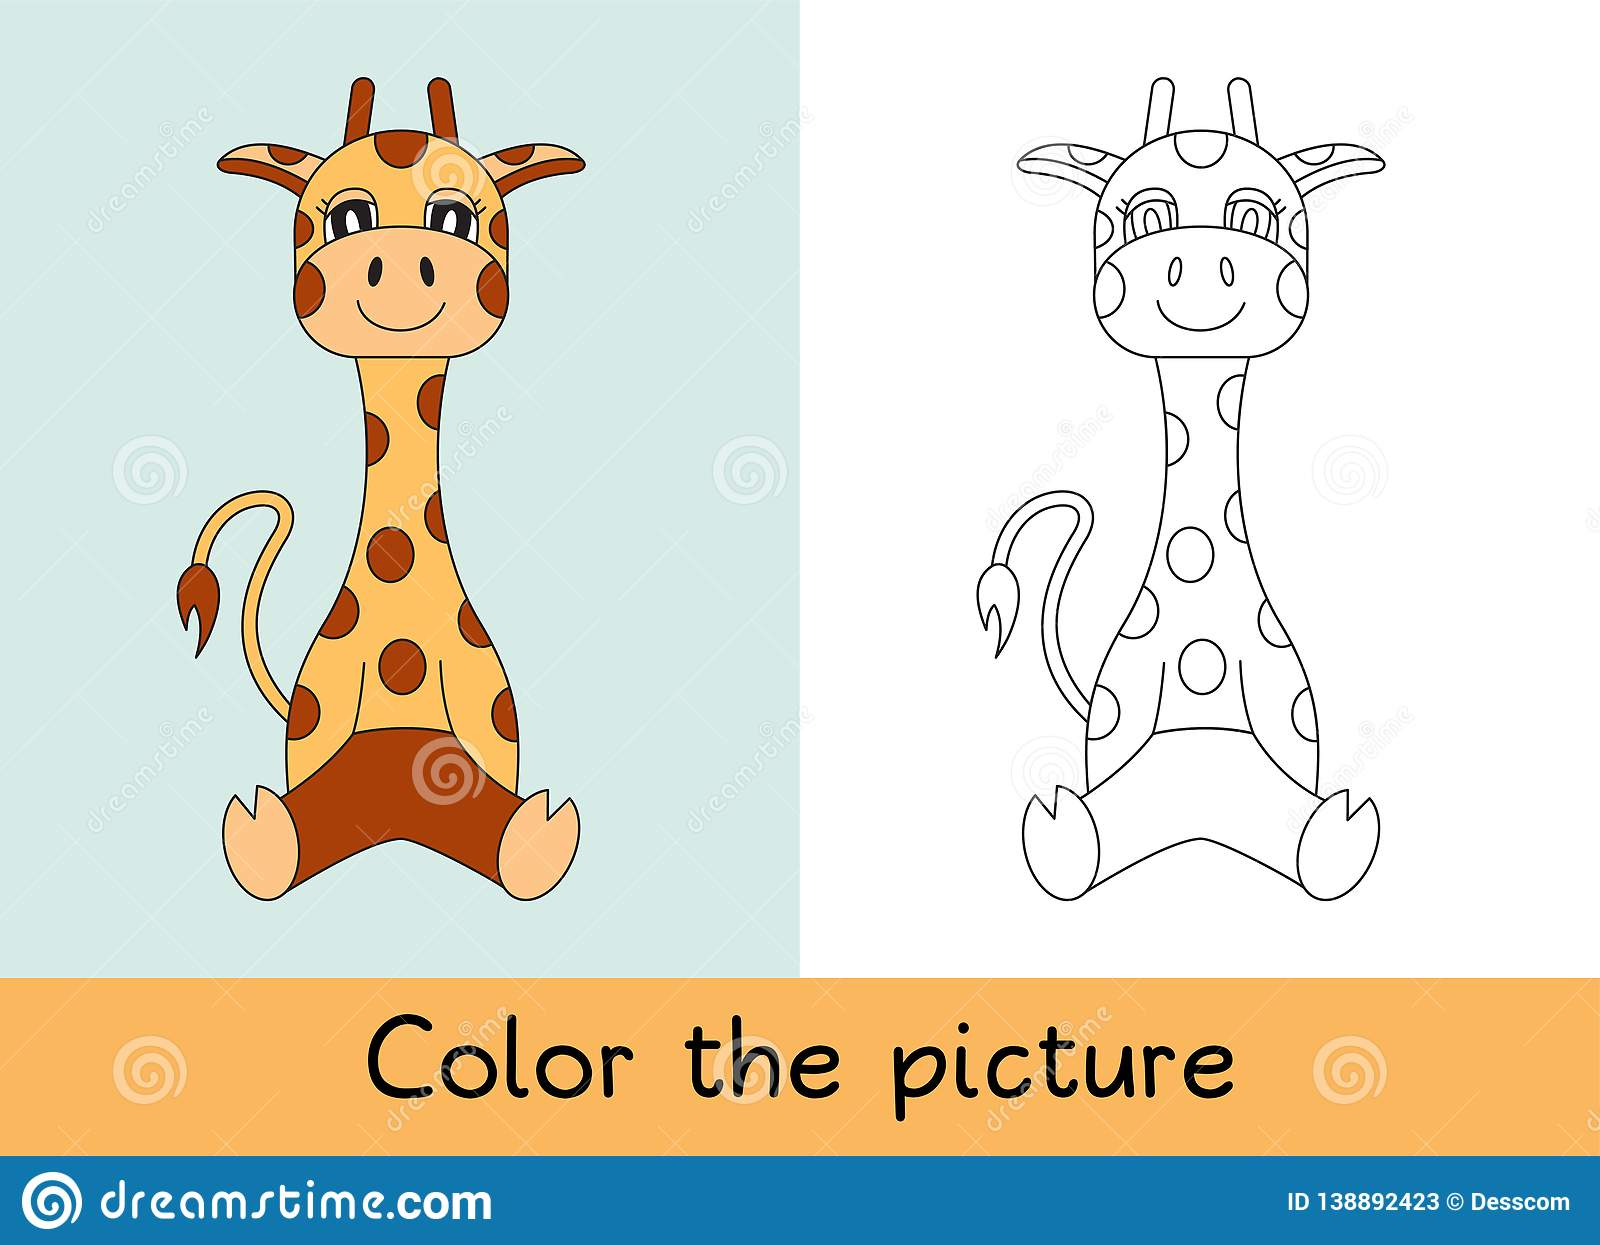 Coloring book. Giraffe. Cartoon animall. Kids game. Color picture. Learning by playing. Task for children